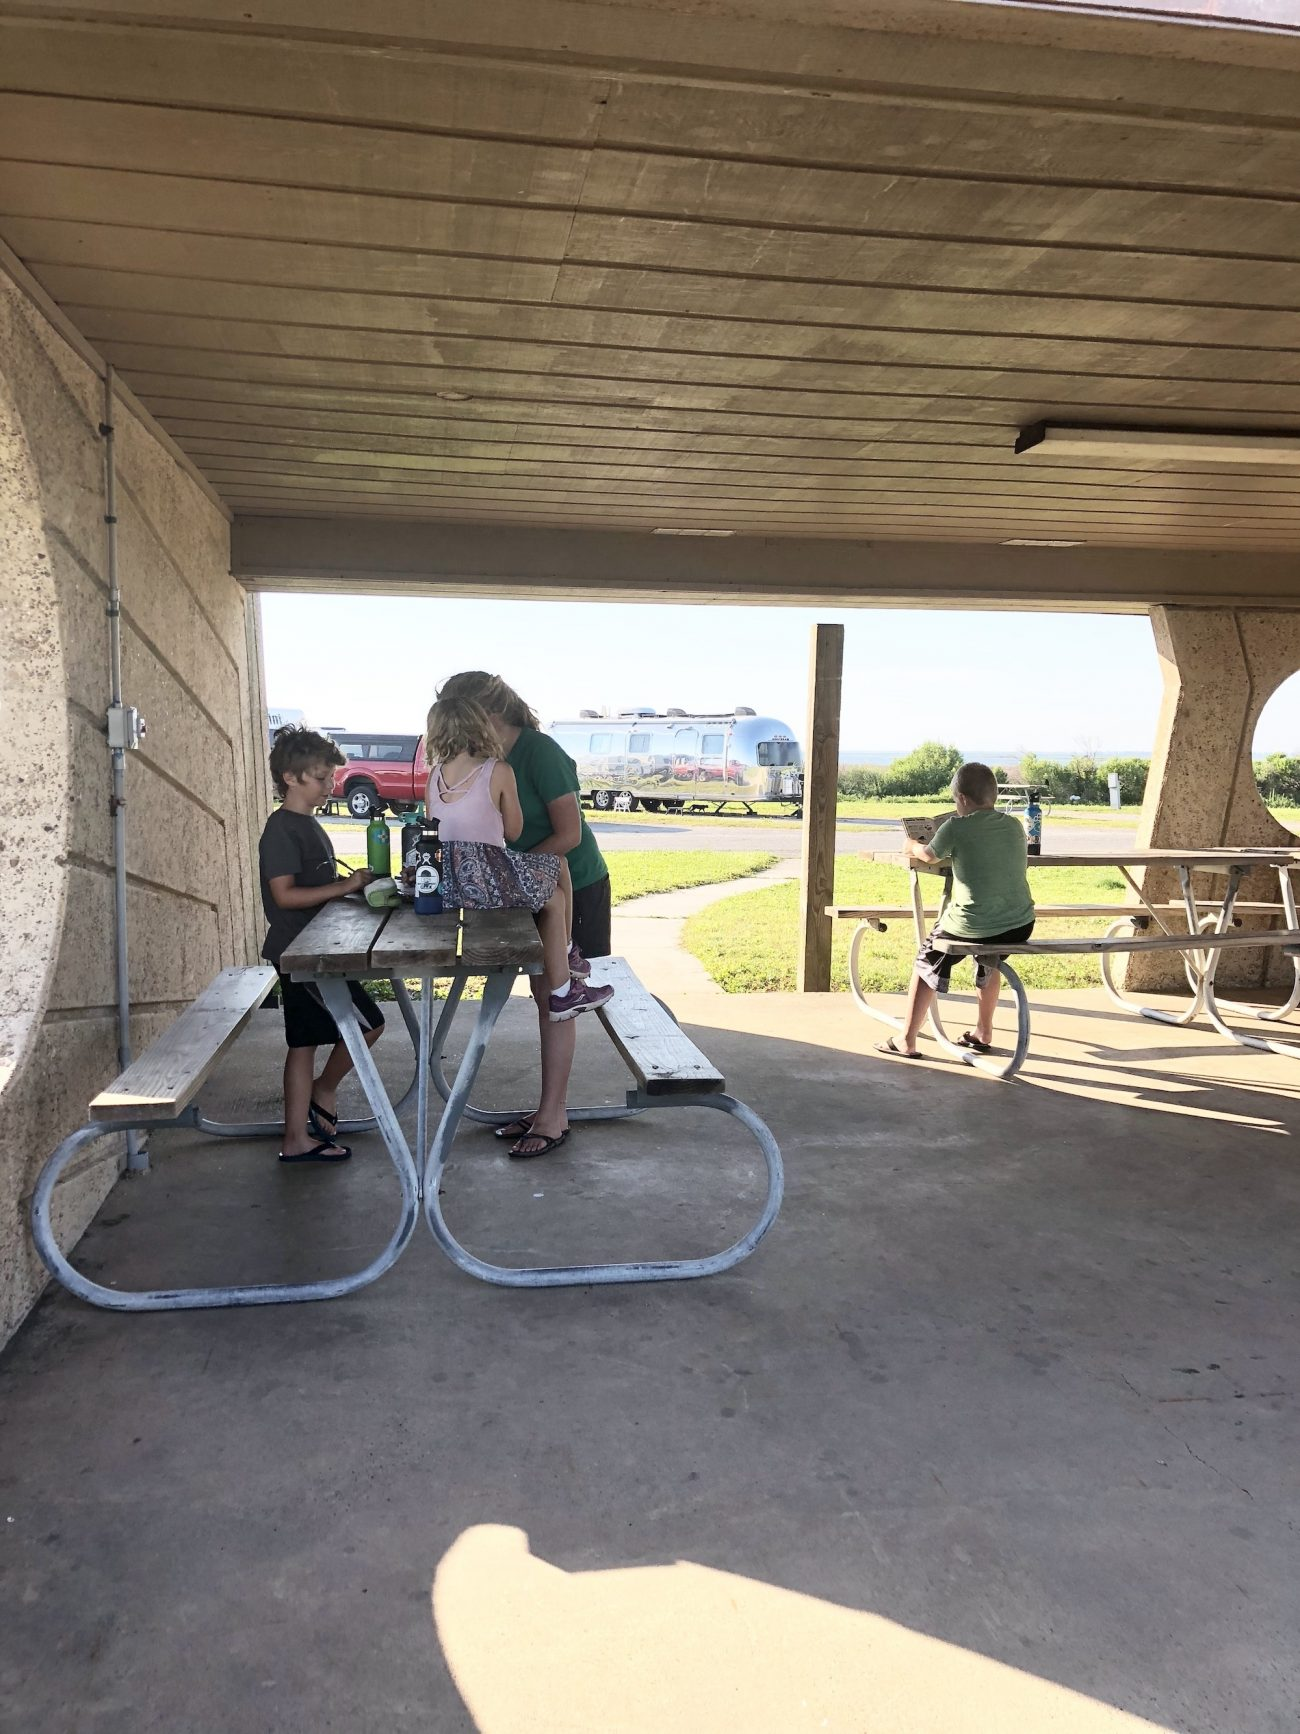 kids in picnic overhang playing